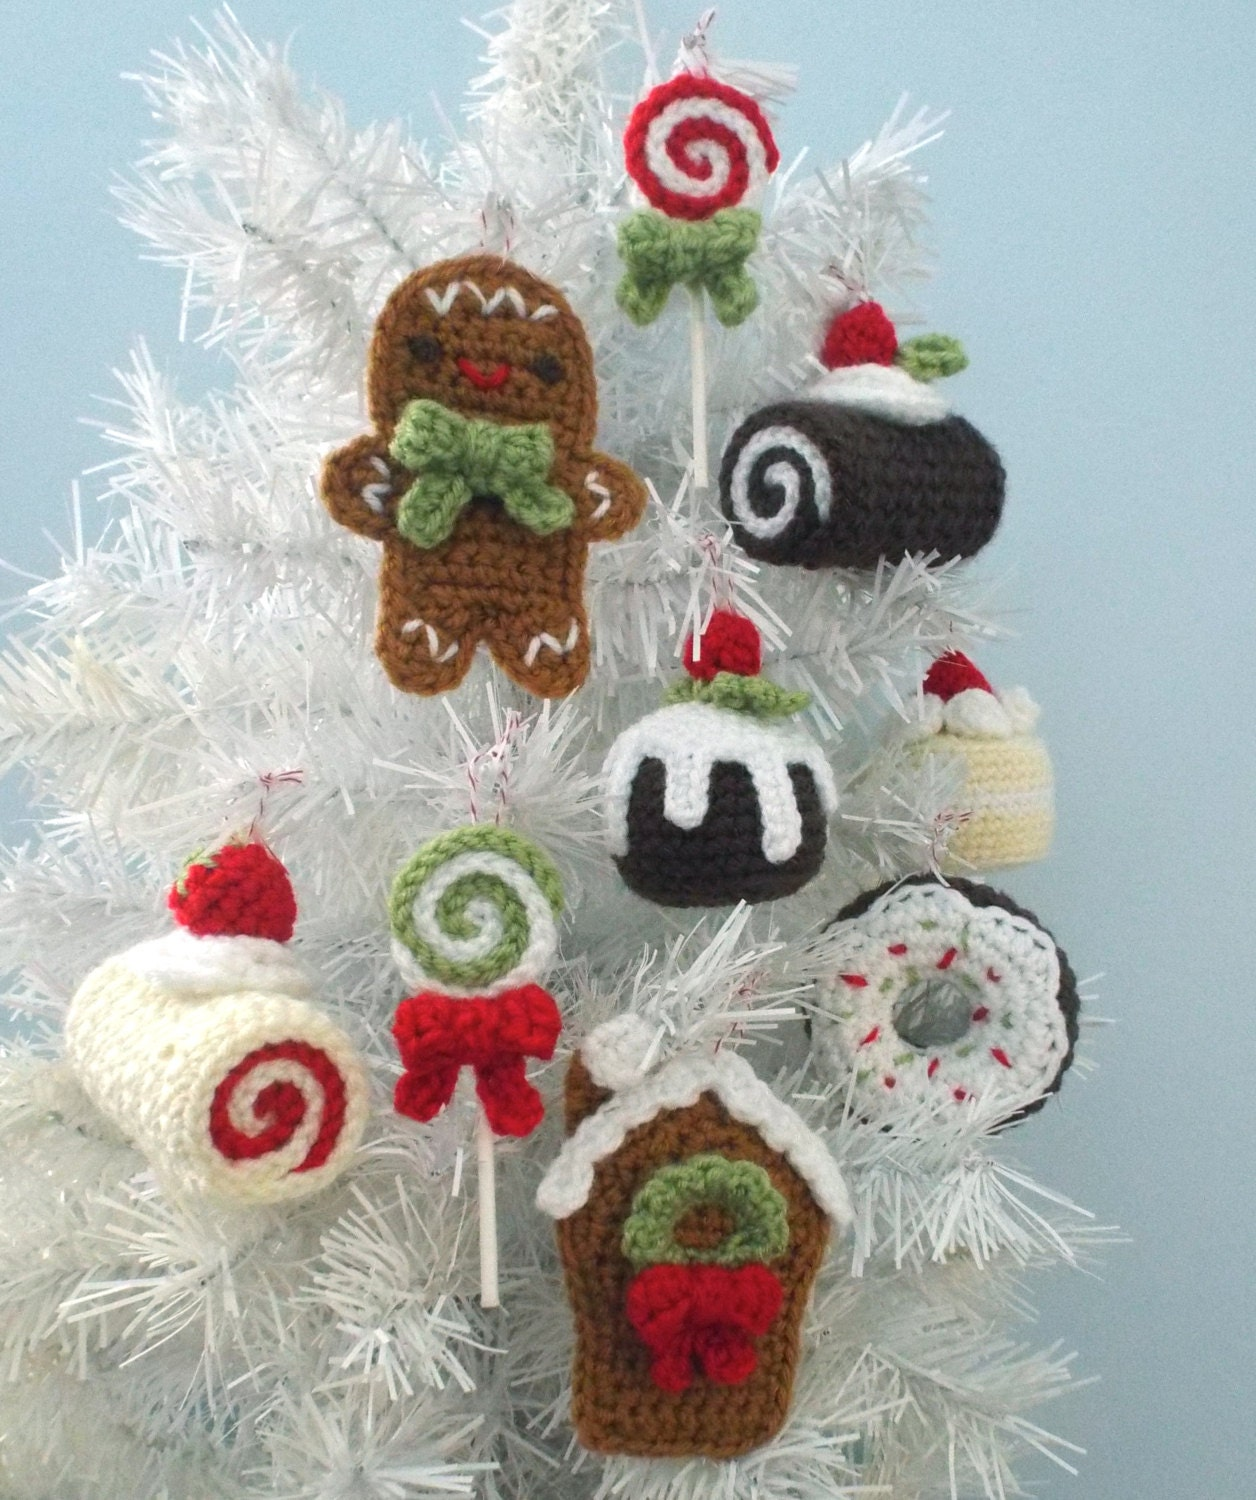 Amigurumi Crochet Christmas Sweets Ornament Pattern Set